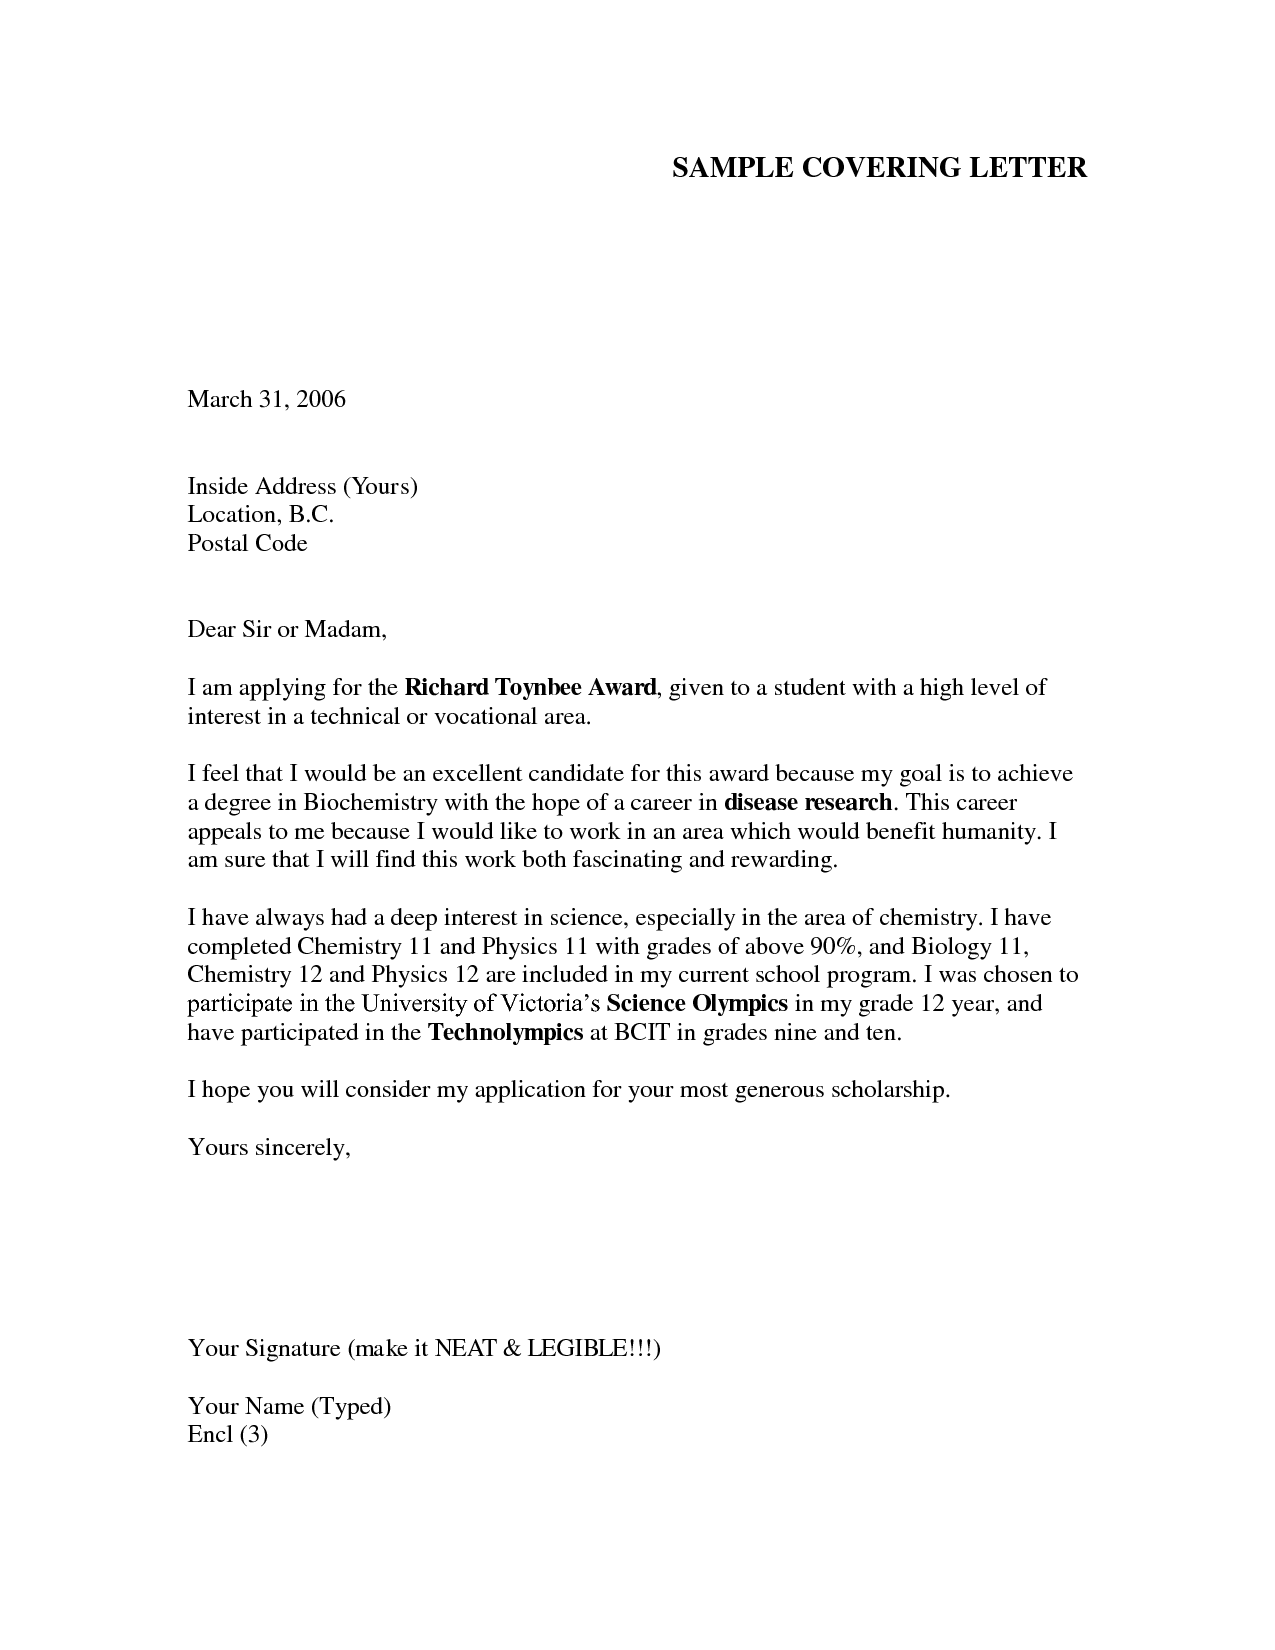 Cover letter example for job application cover letter for Format of a covering letter for a job application